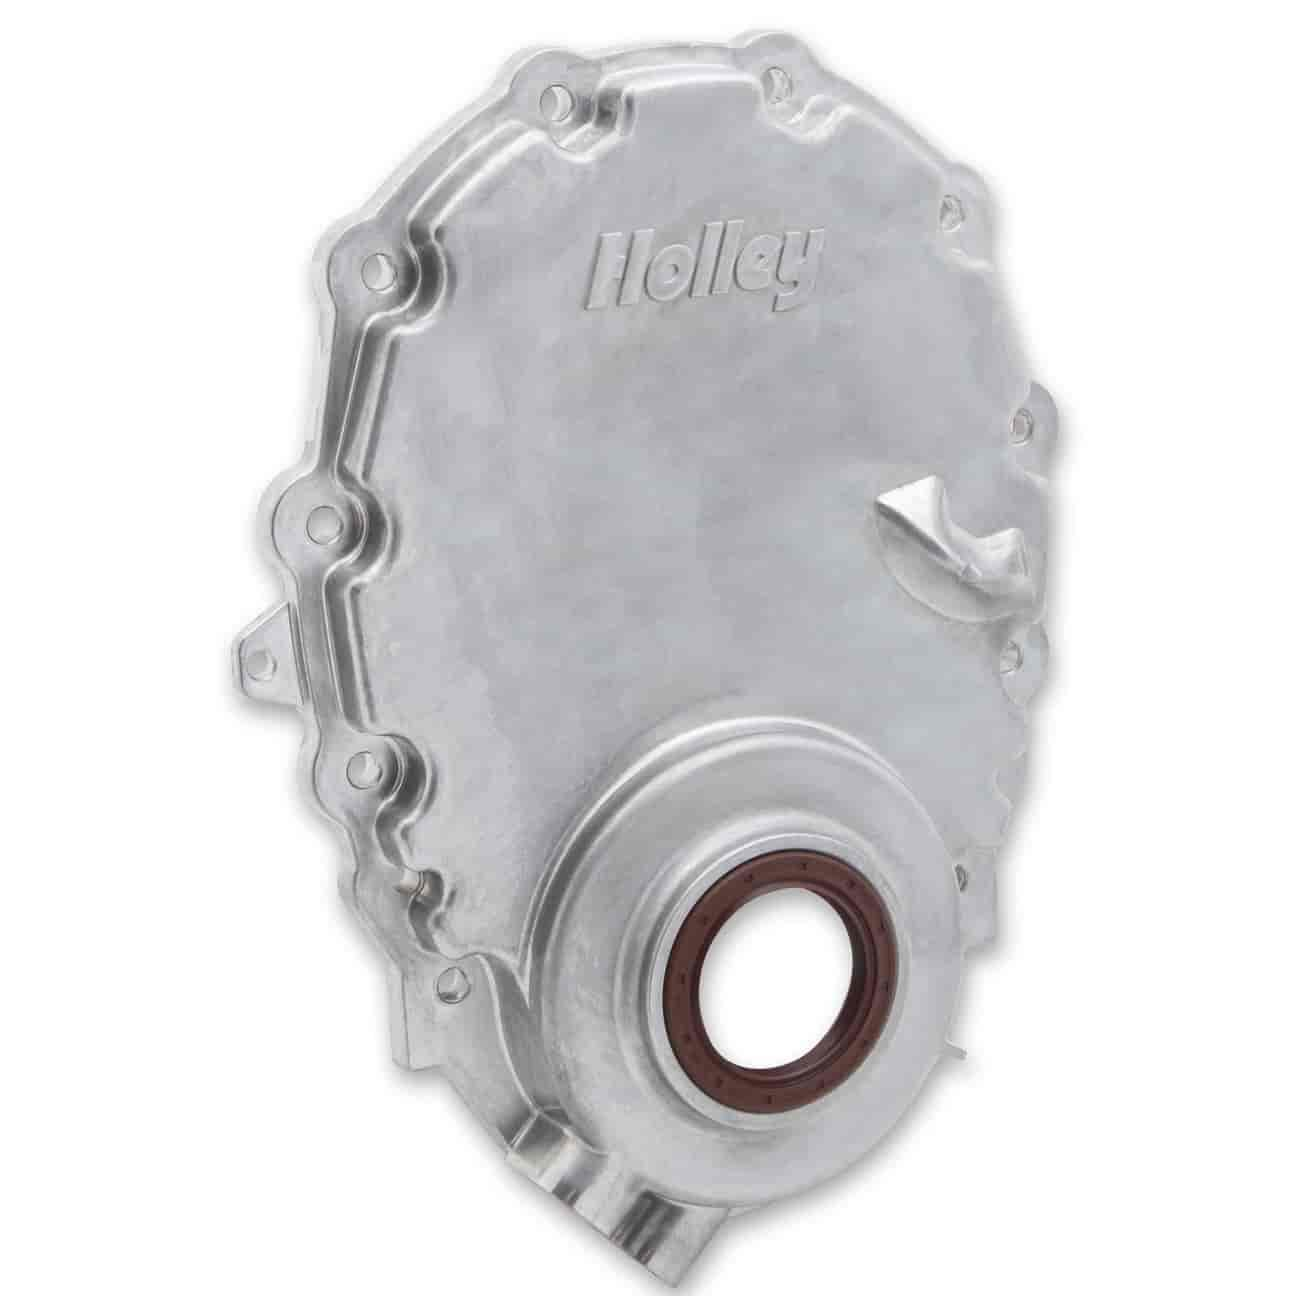 Holley 21-152